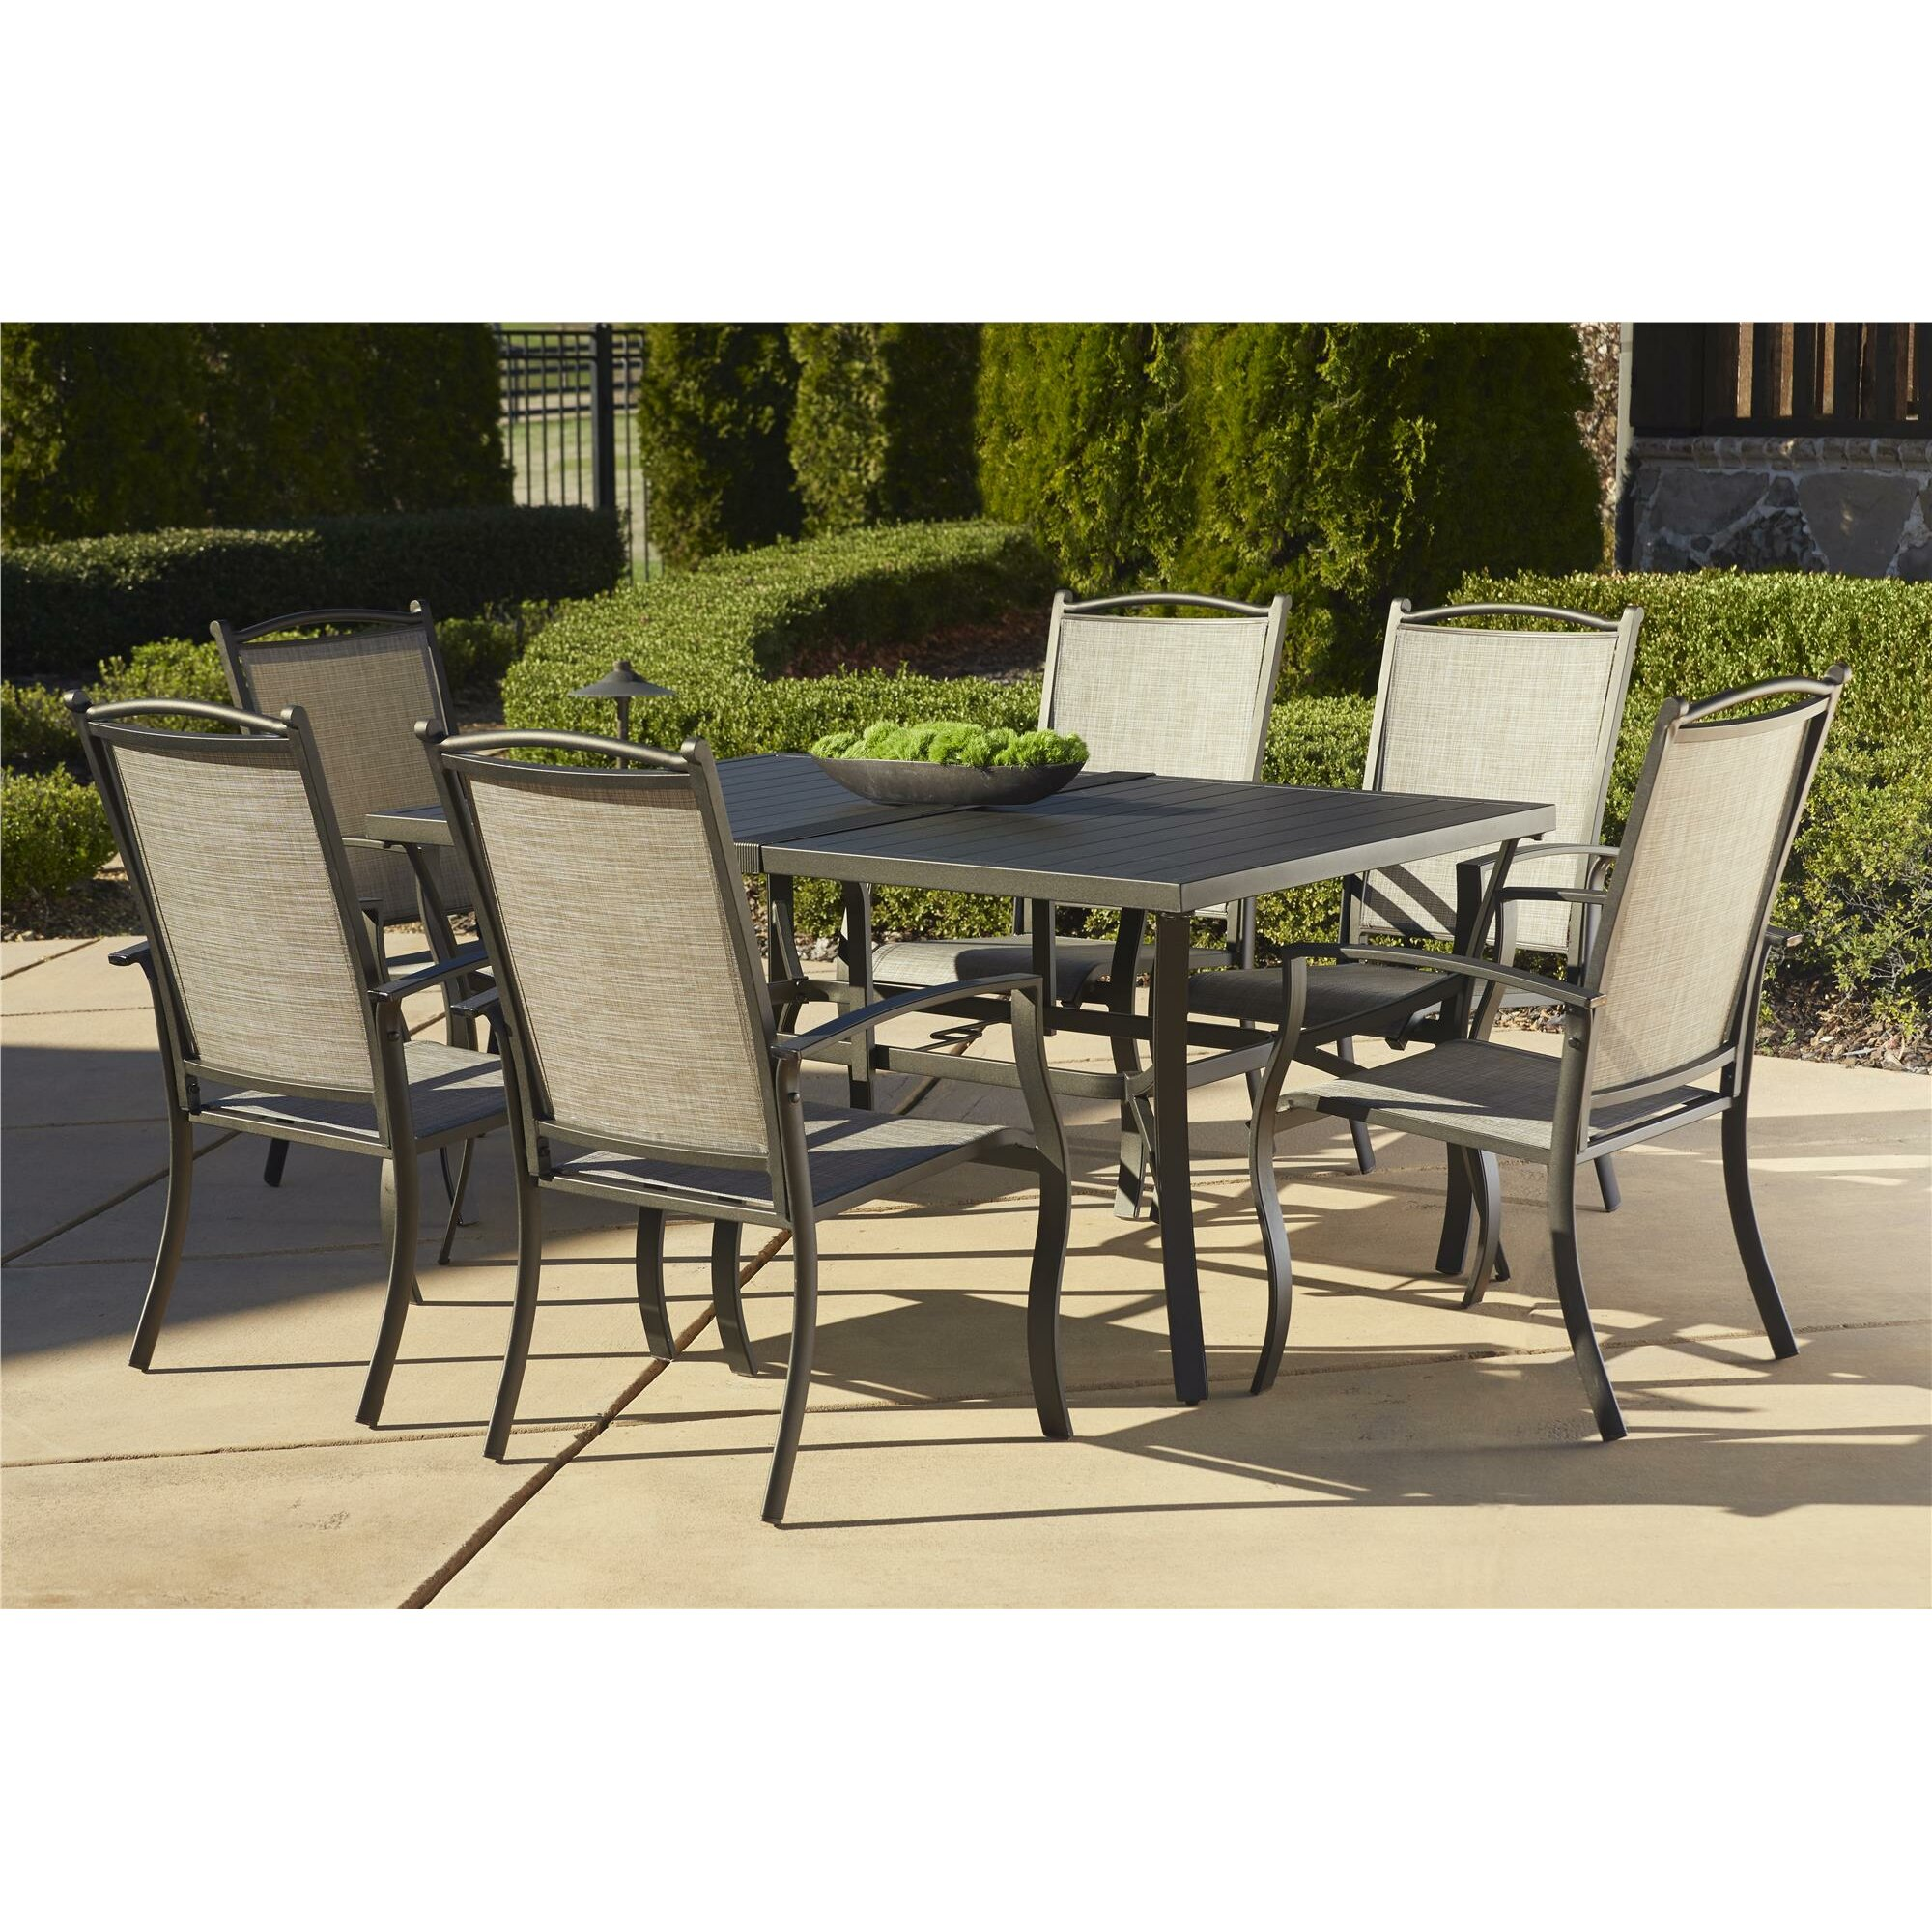 Three posts pavilion 7 piece dining set reviews wayfair for Outdoor patio couch set